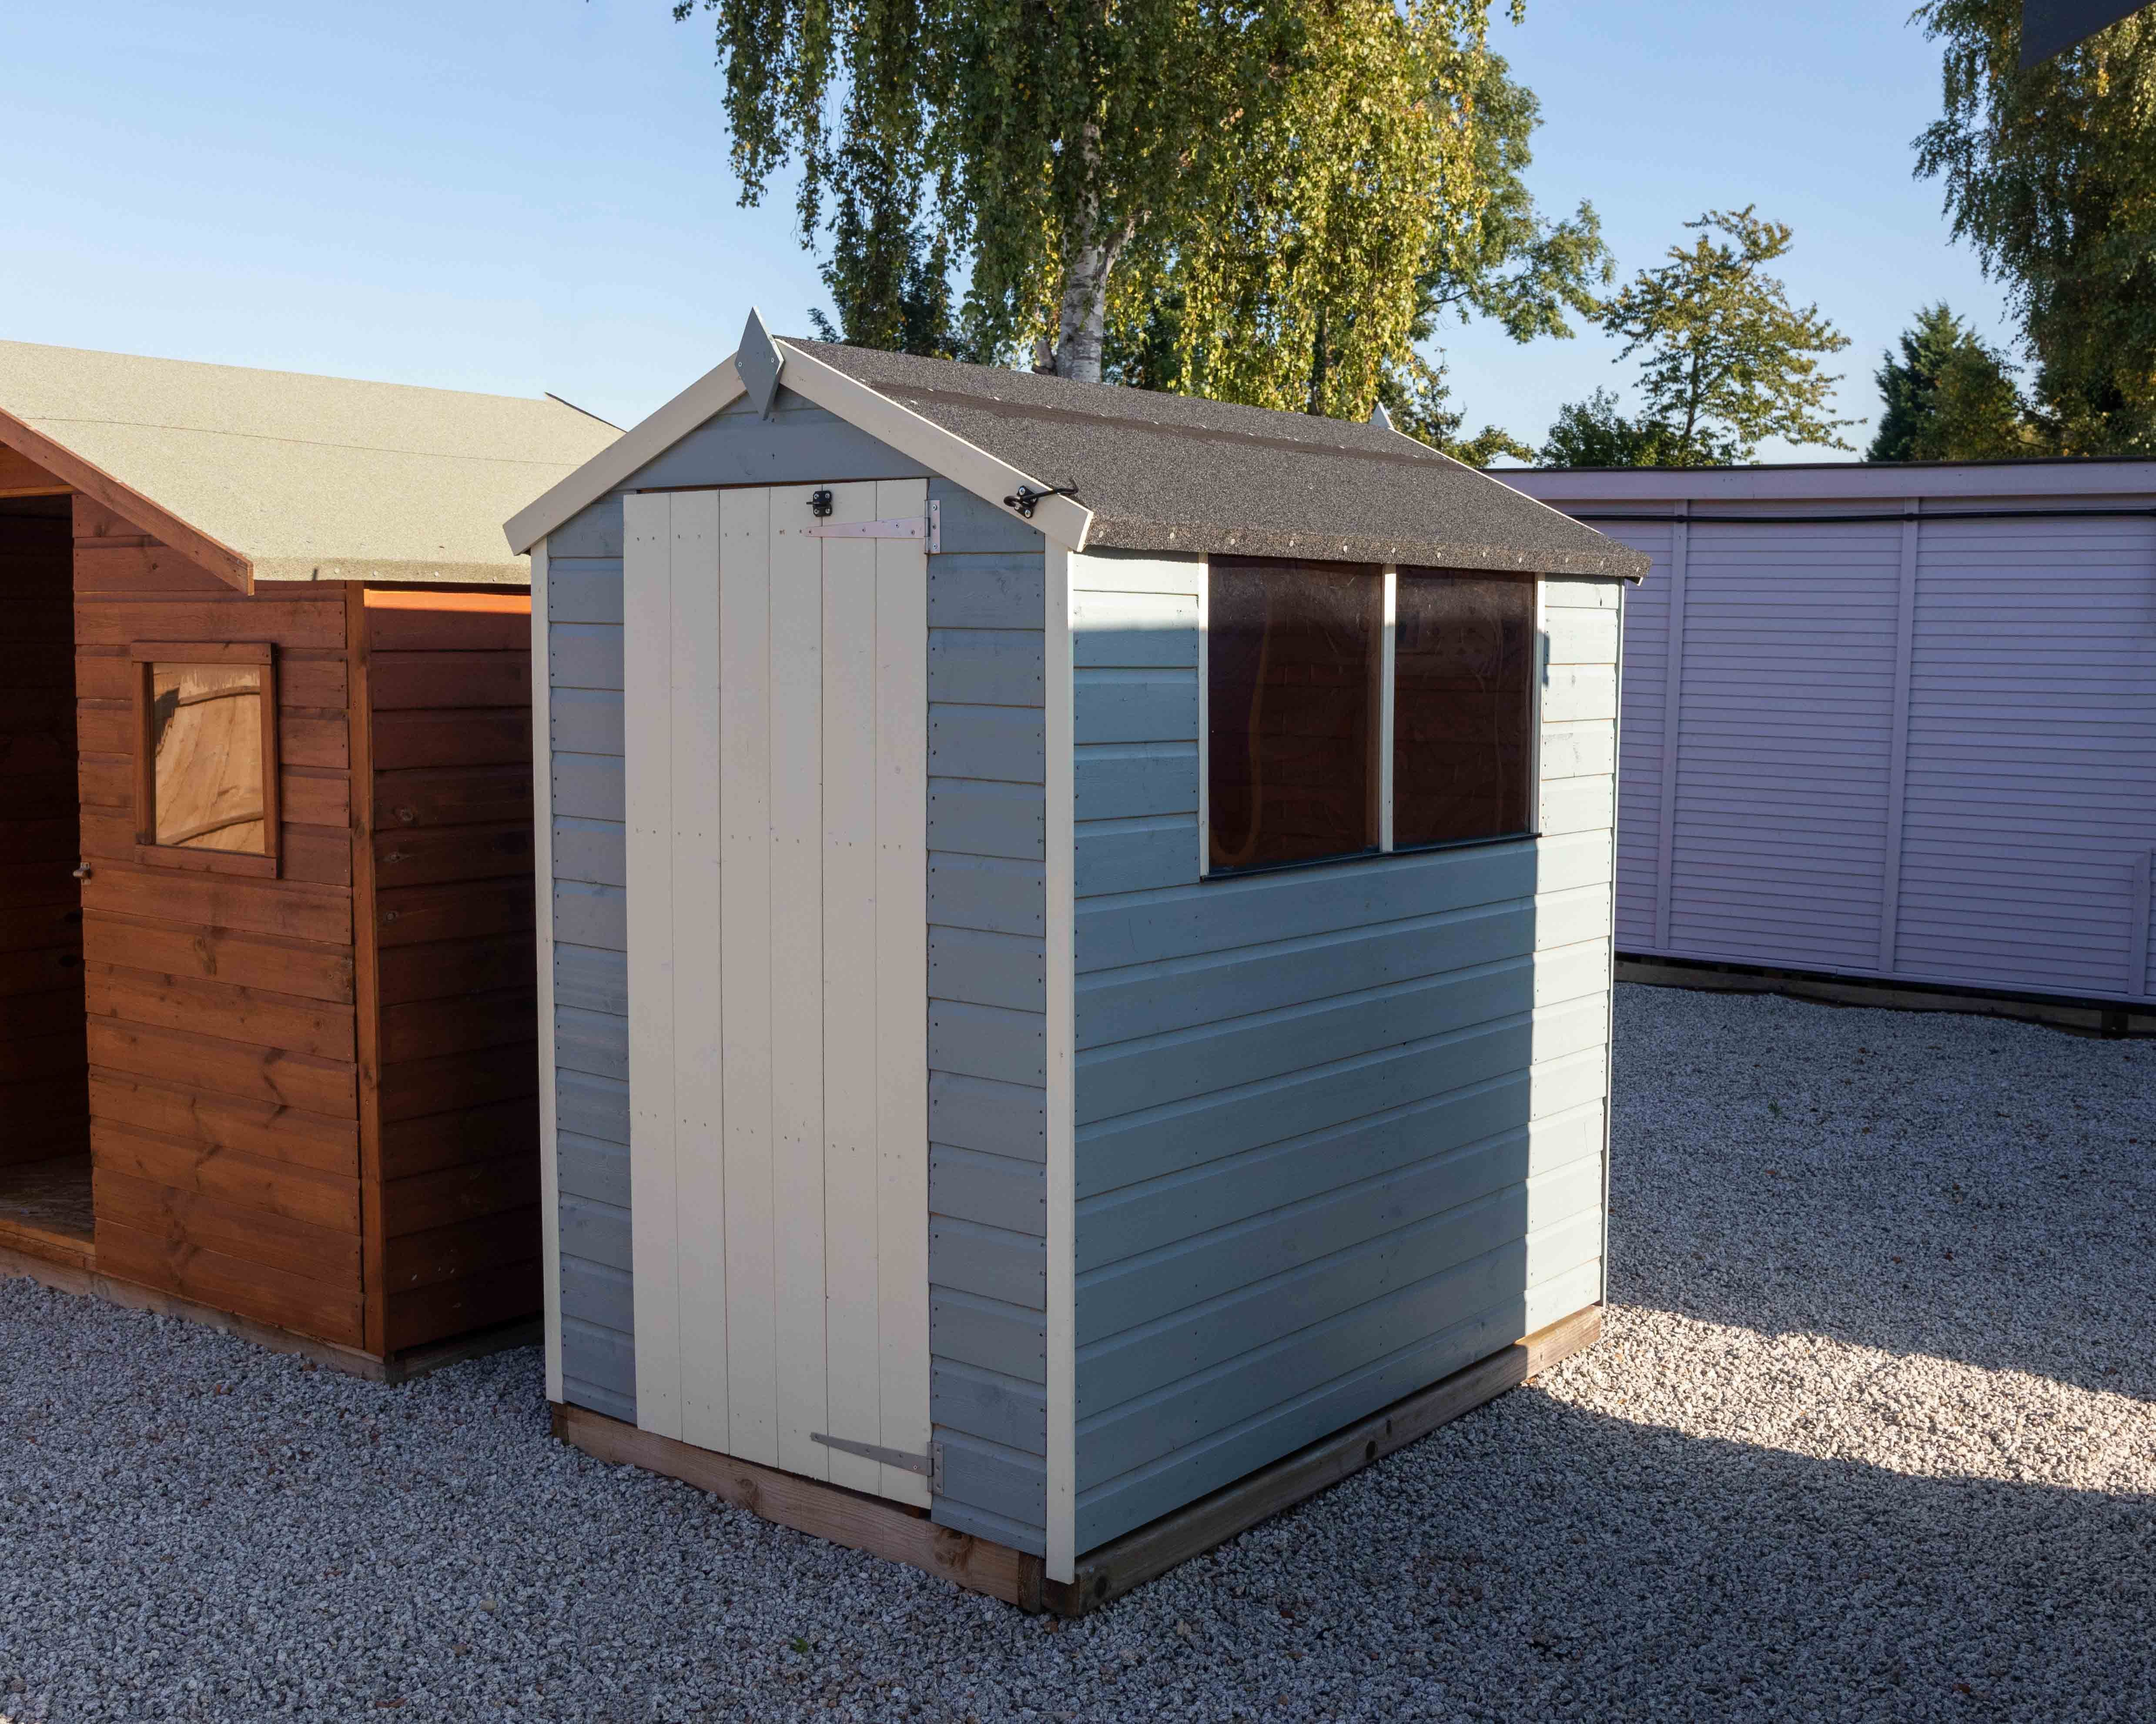 Waltons 6 X 4 Pressure Treated Shiplap Single Door Apex Windowless Wooden Shed Shed Wooden Sheds Single Doors